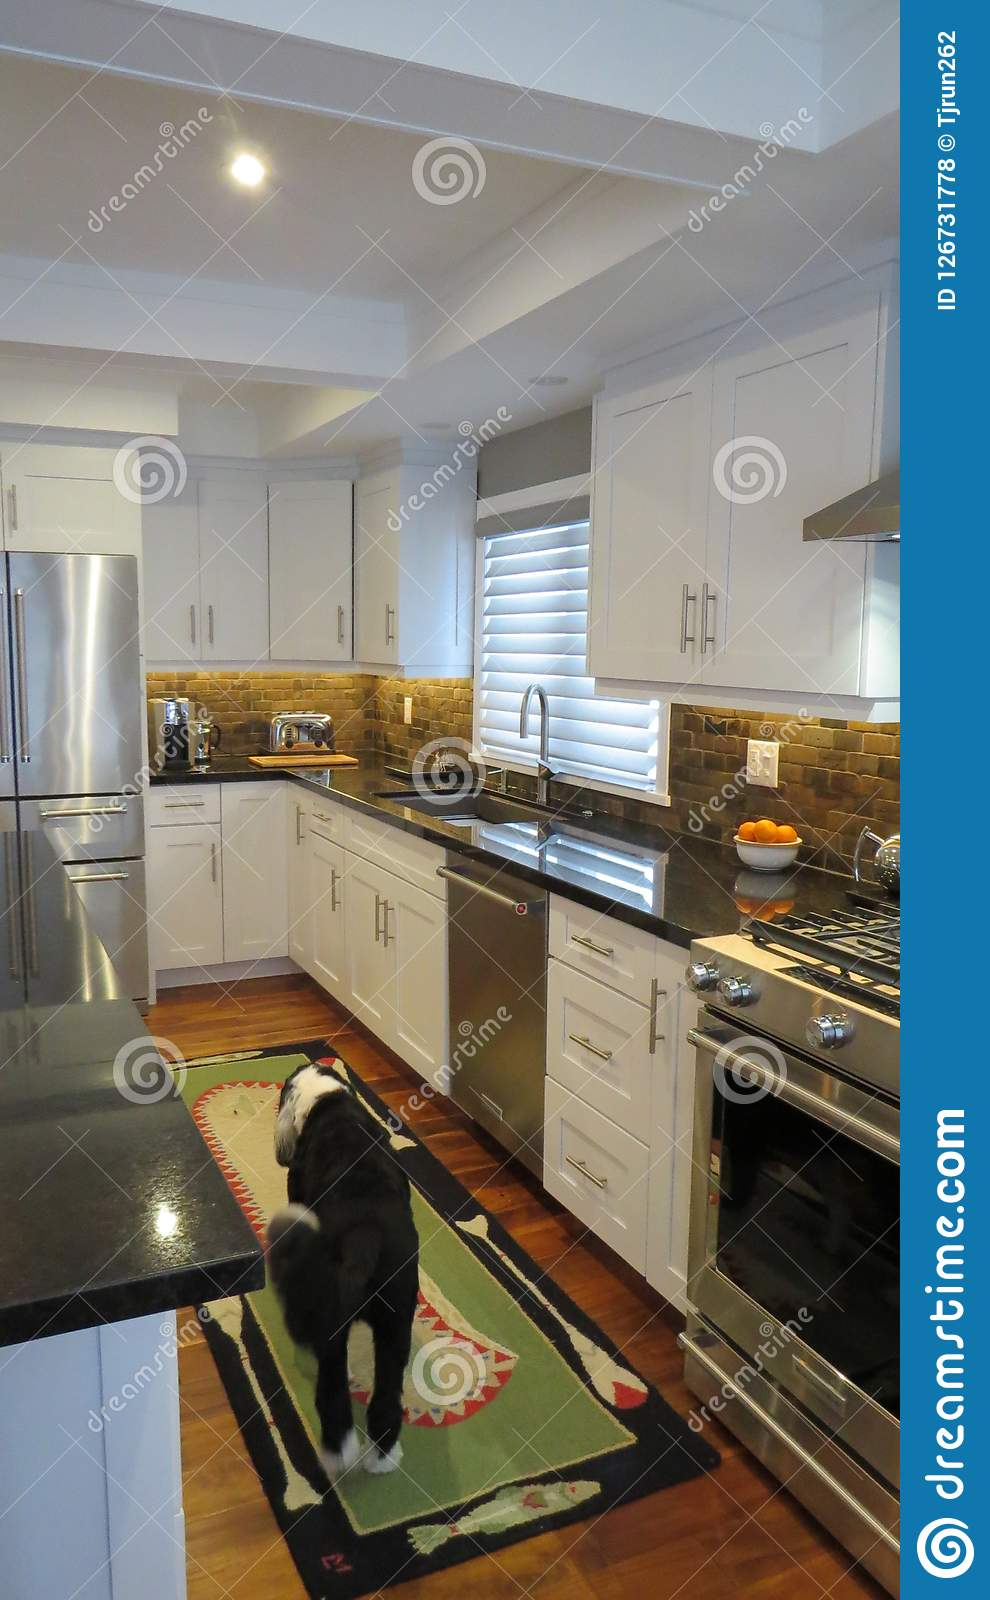 Contemporary Kitchen Interior With Dog And Rug Stock Photo Image Of Renovation White 126731778